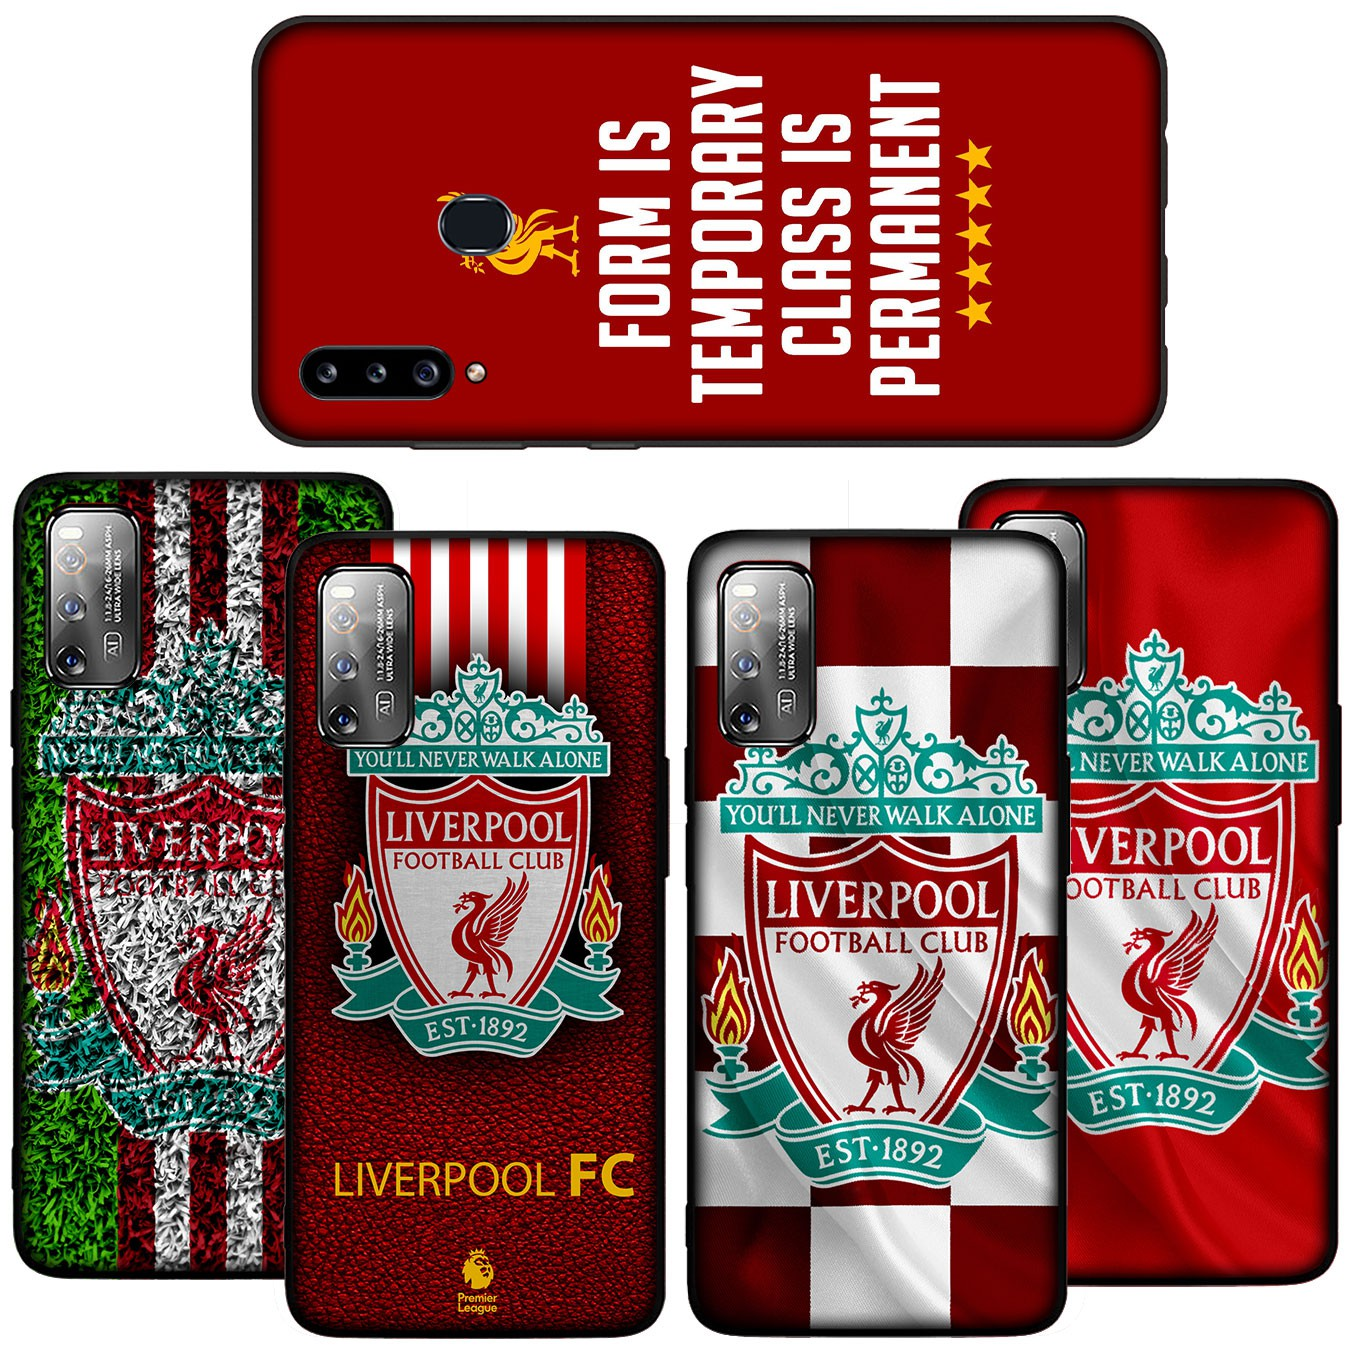 Ốp Điện Thoại Silicon Mềm In Logo Liverpool Cho Samsung Galaxy A11 A10 A20 A30 A50 A10s A20s A30s A50s A51 A71